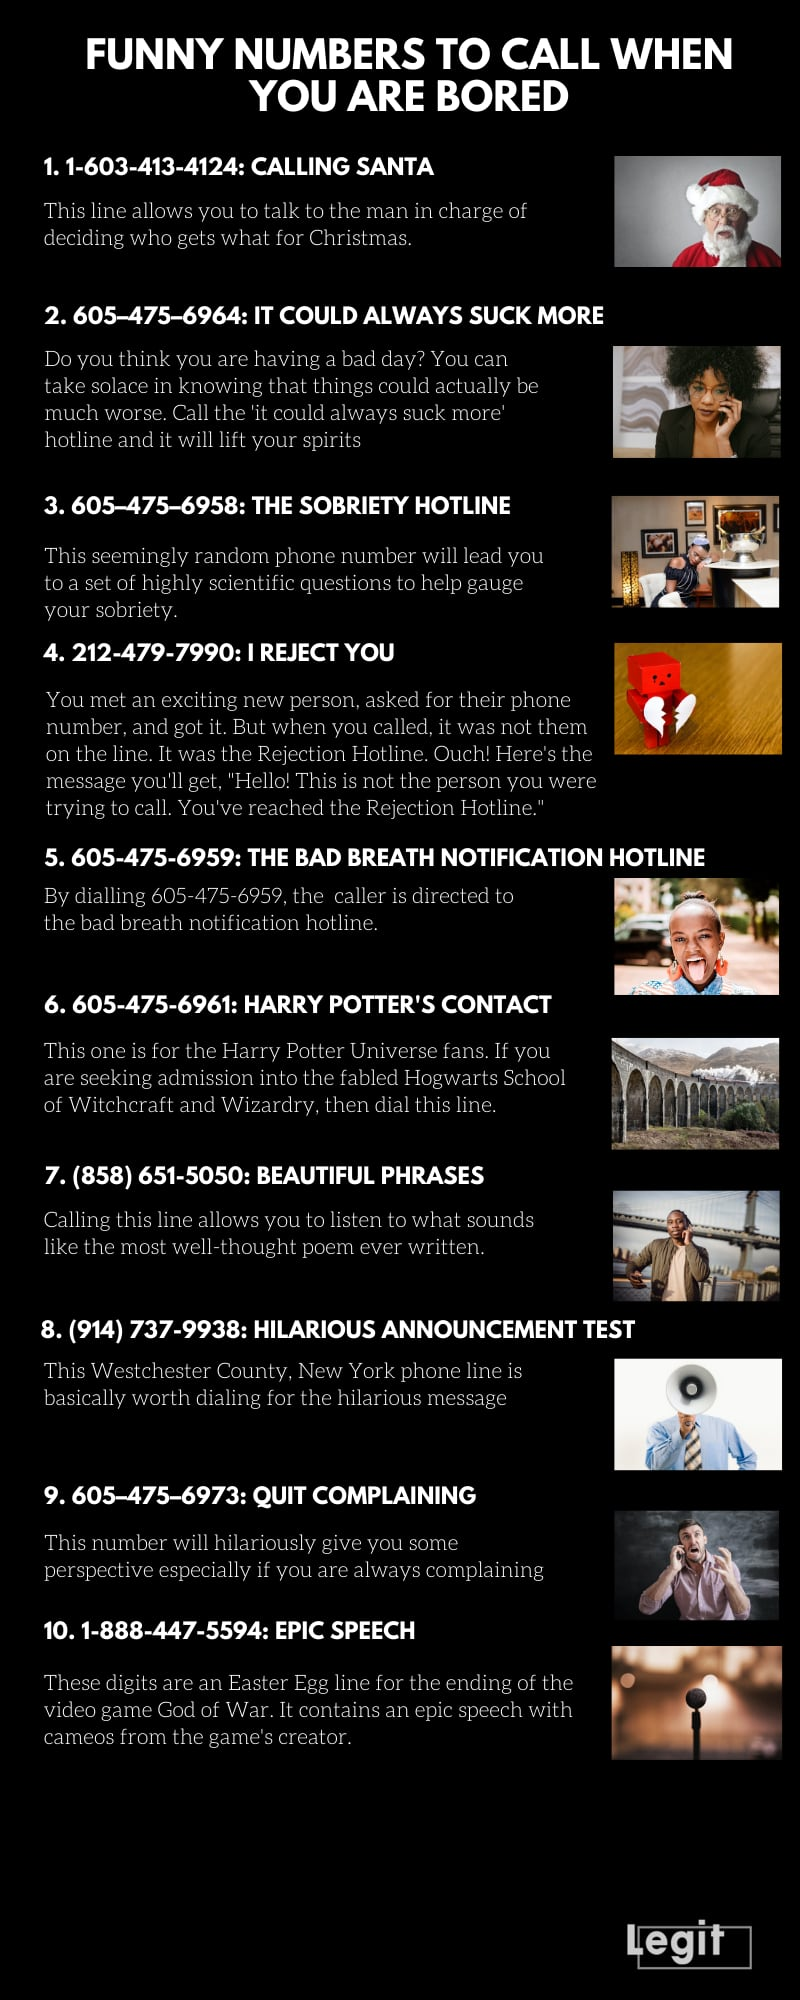 Prank Phone Numbers To Give Out : prank, phone, numbers, Funny, Numbers, Bored, Stuck